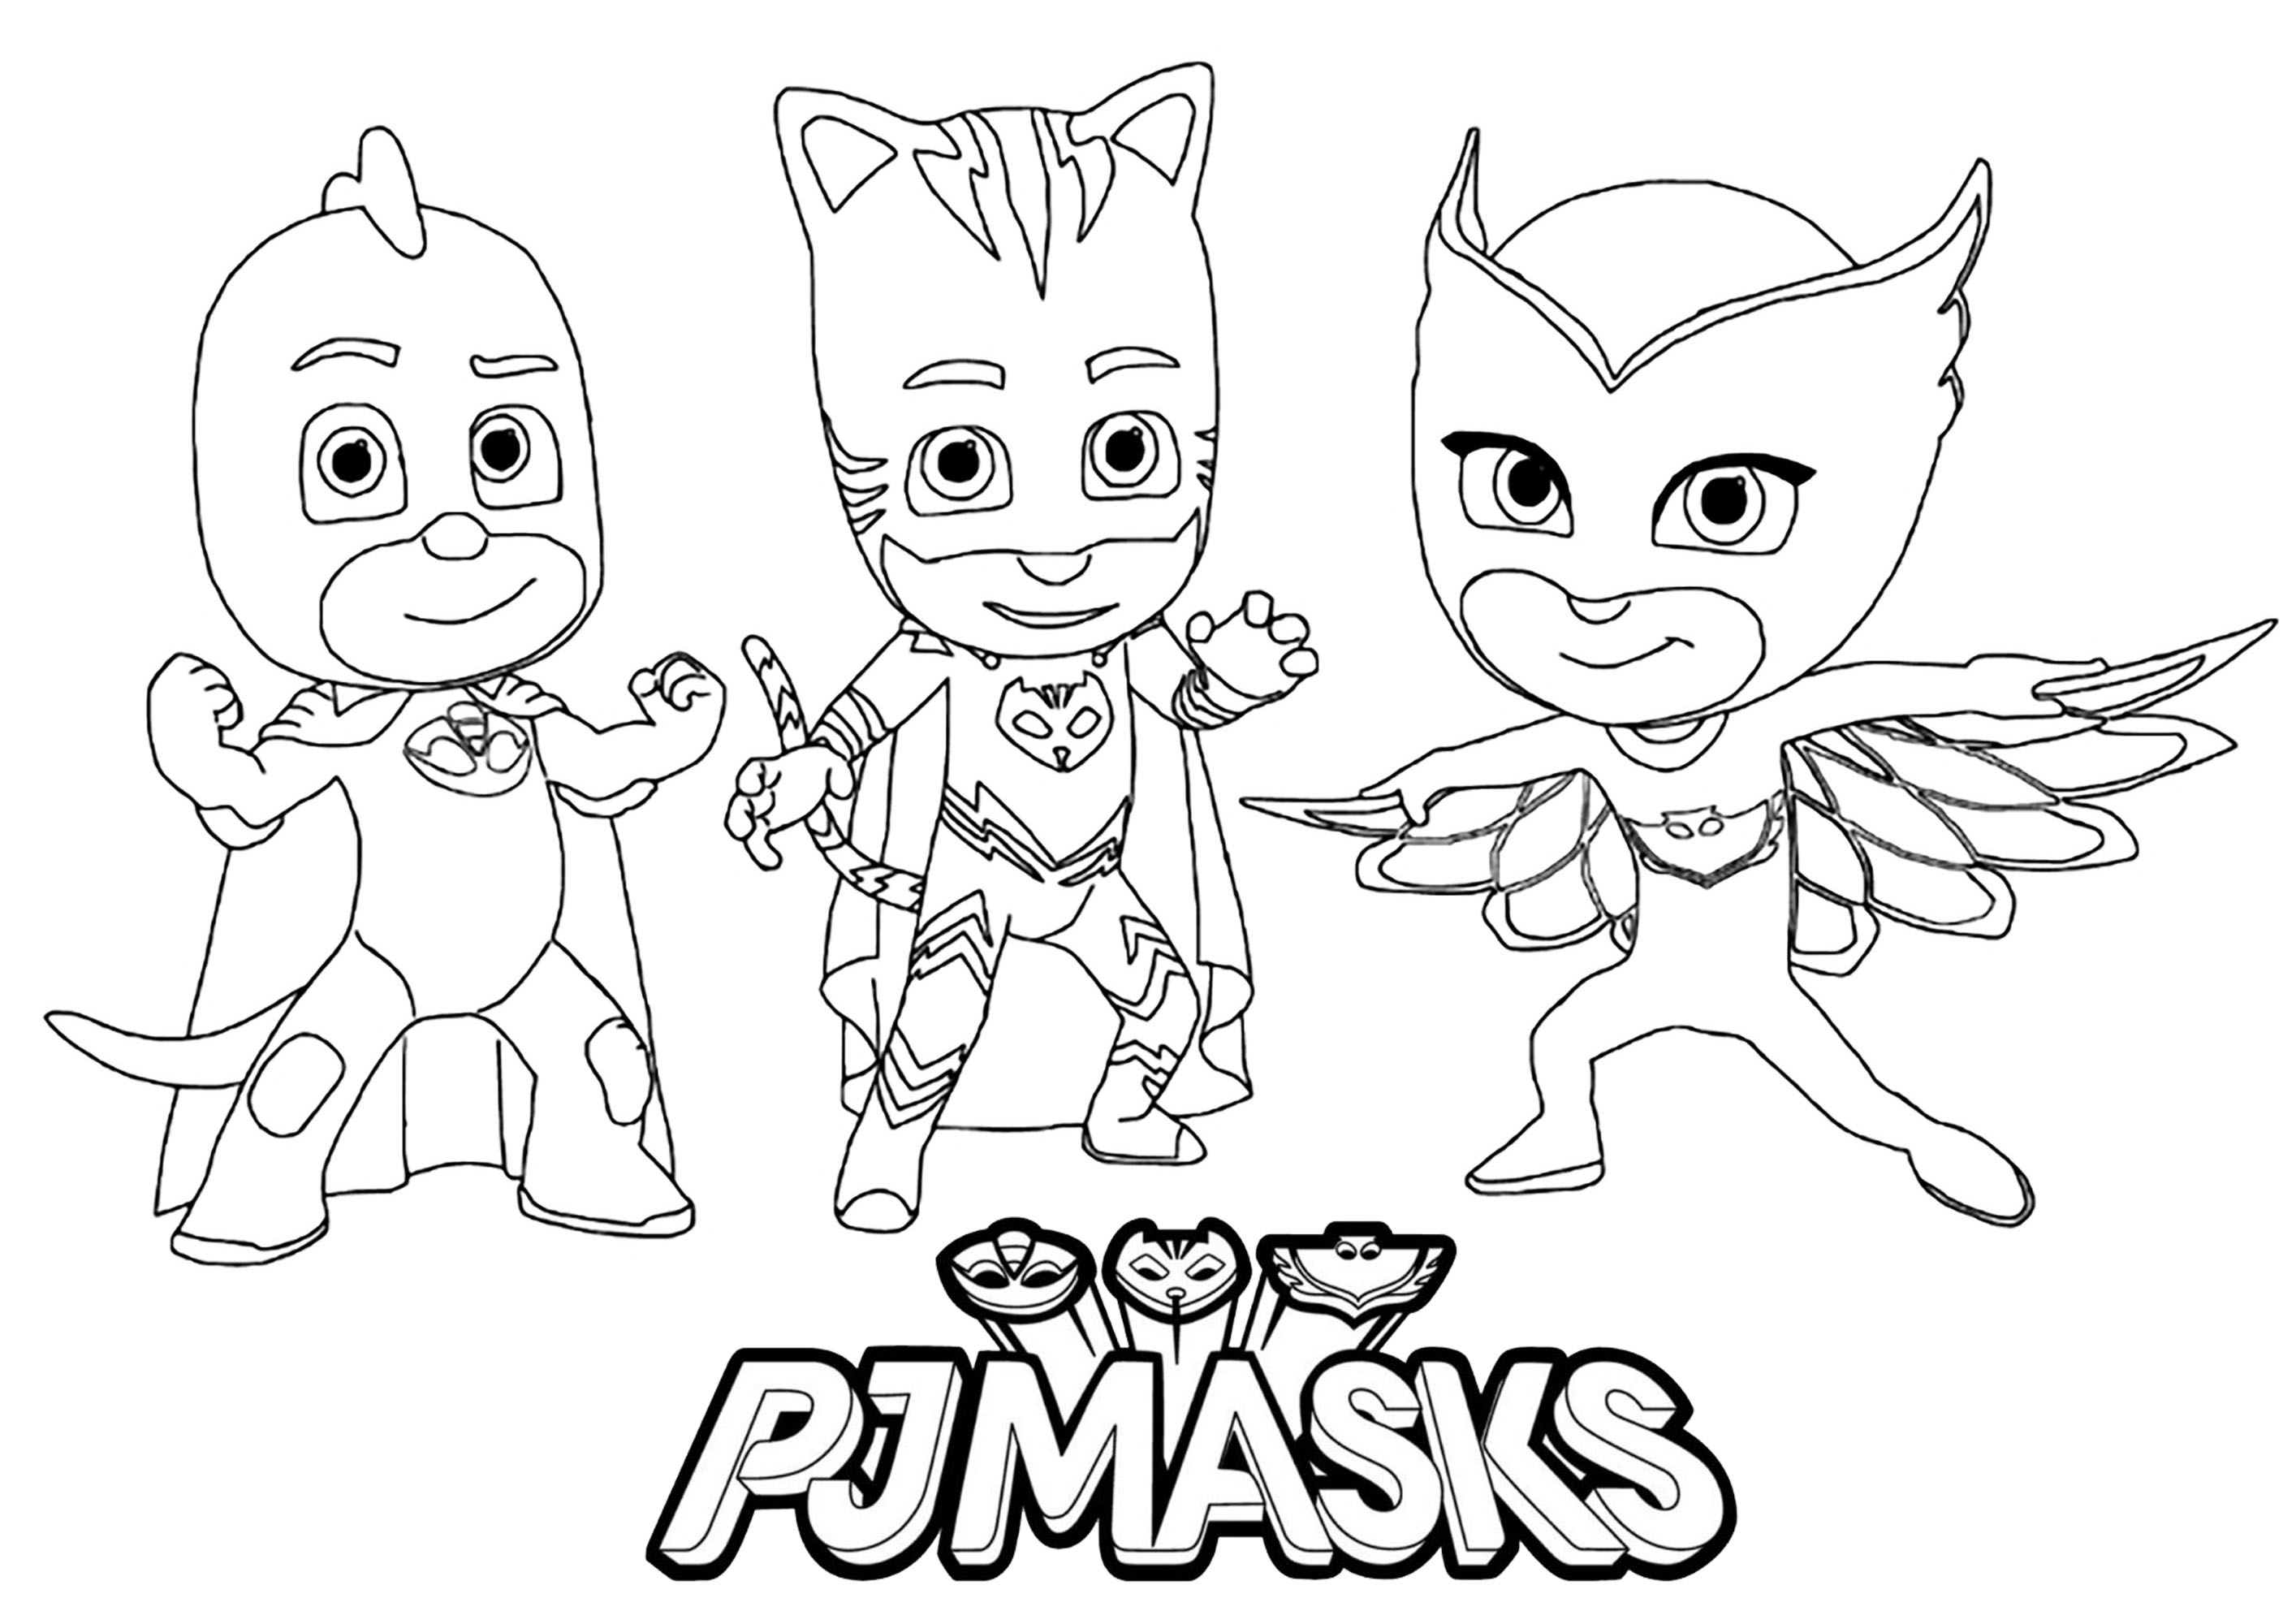 Pj masks to download for free - PJ Masks Kids Coloring Pages